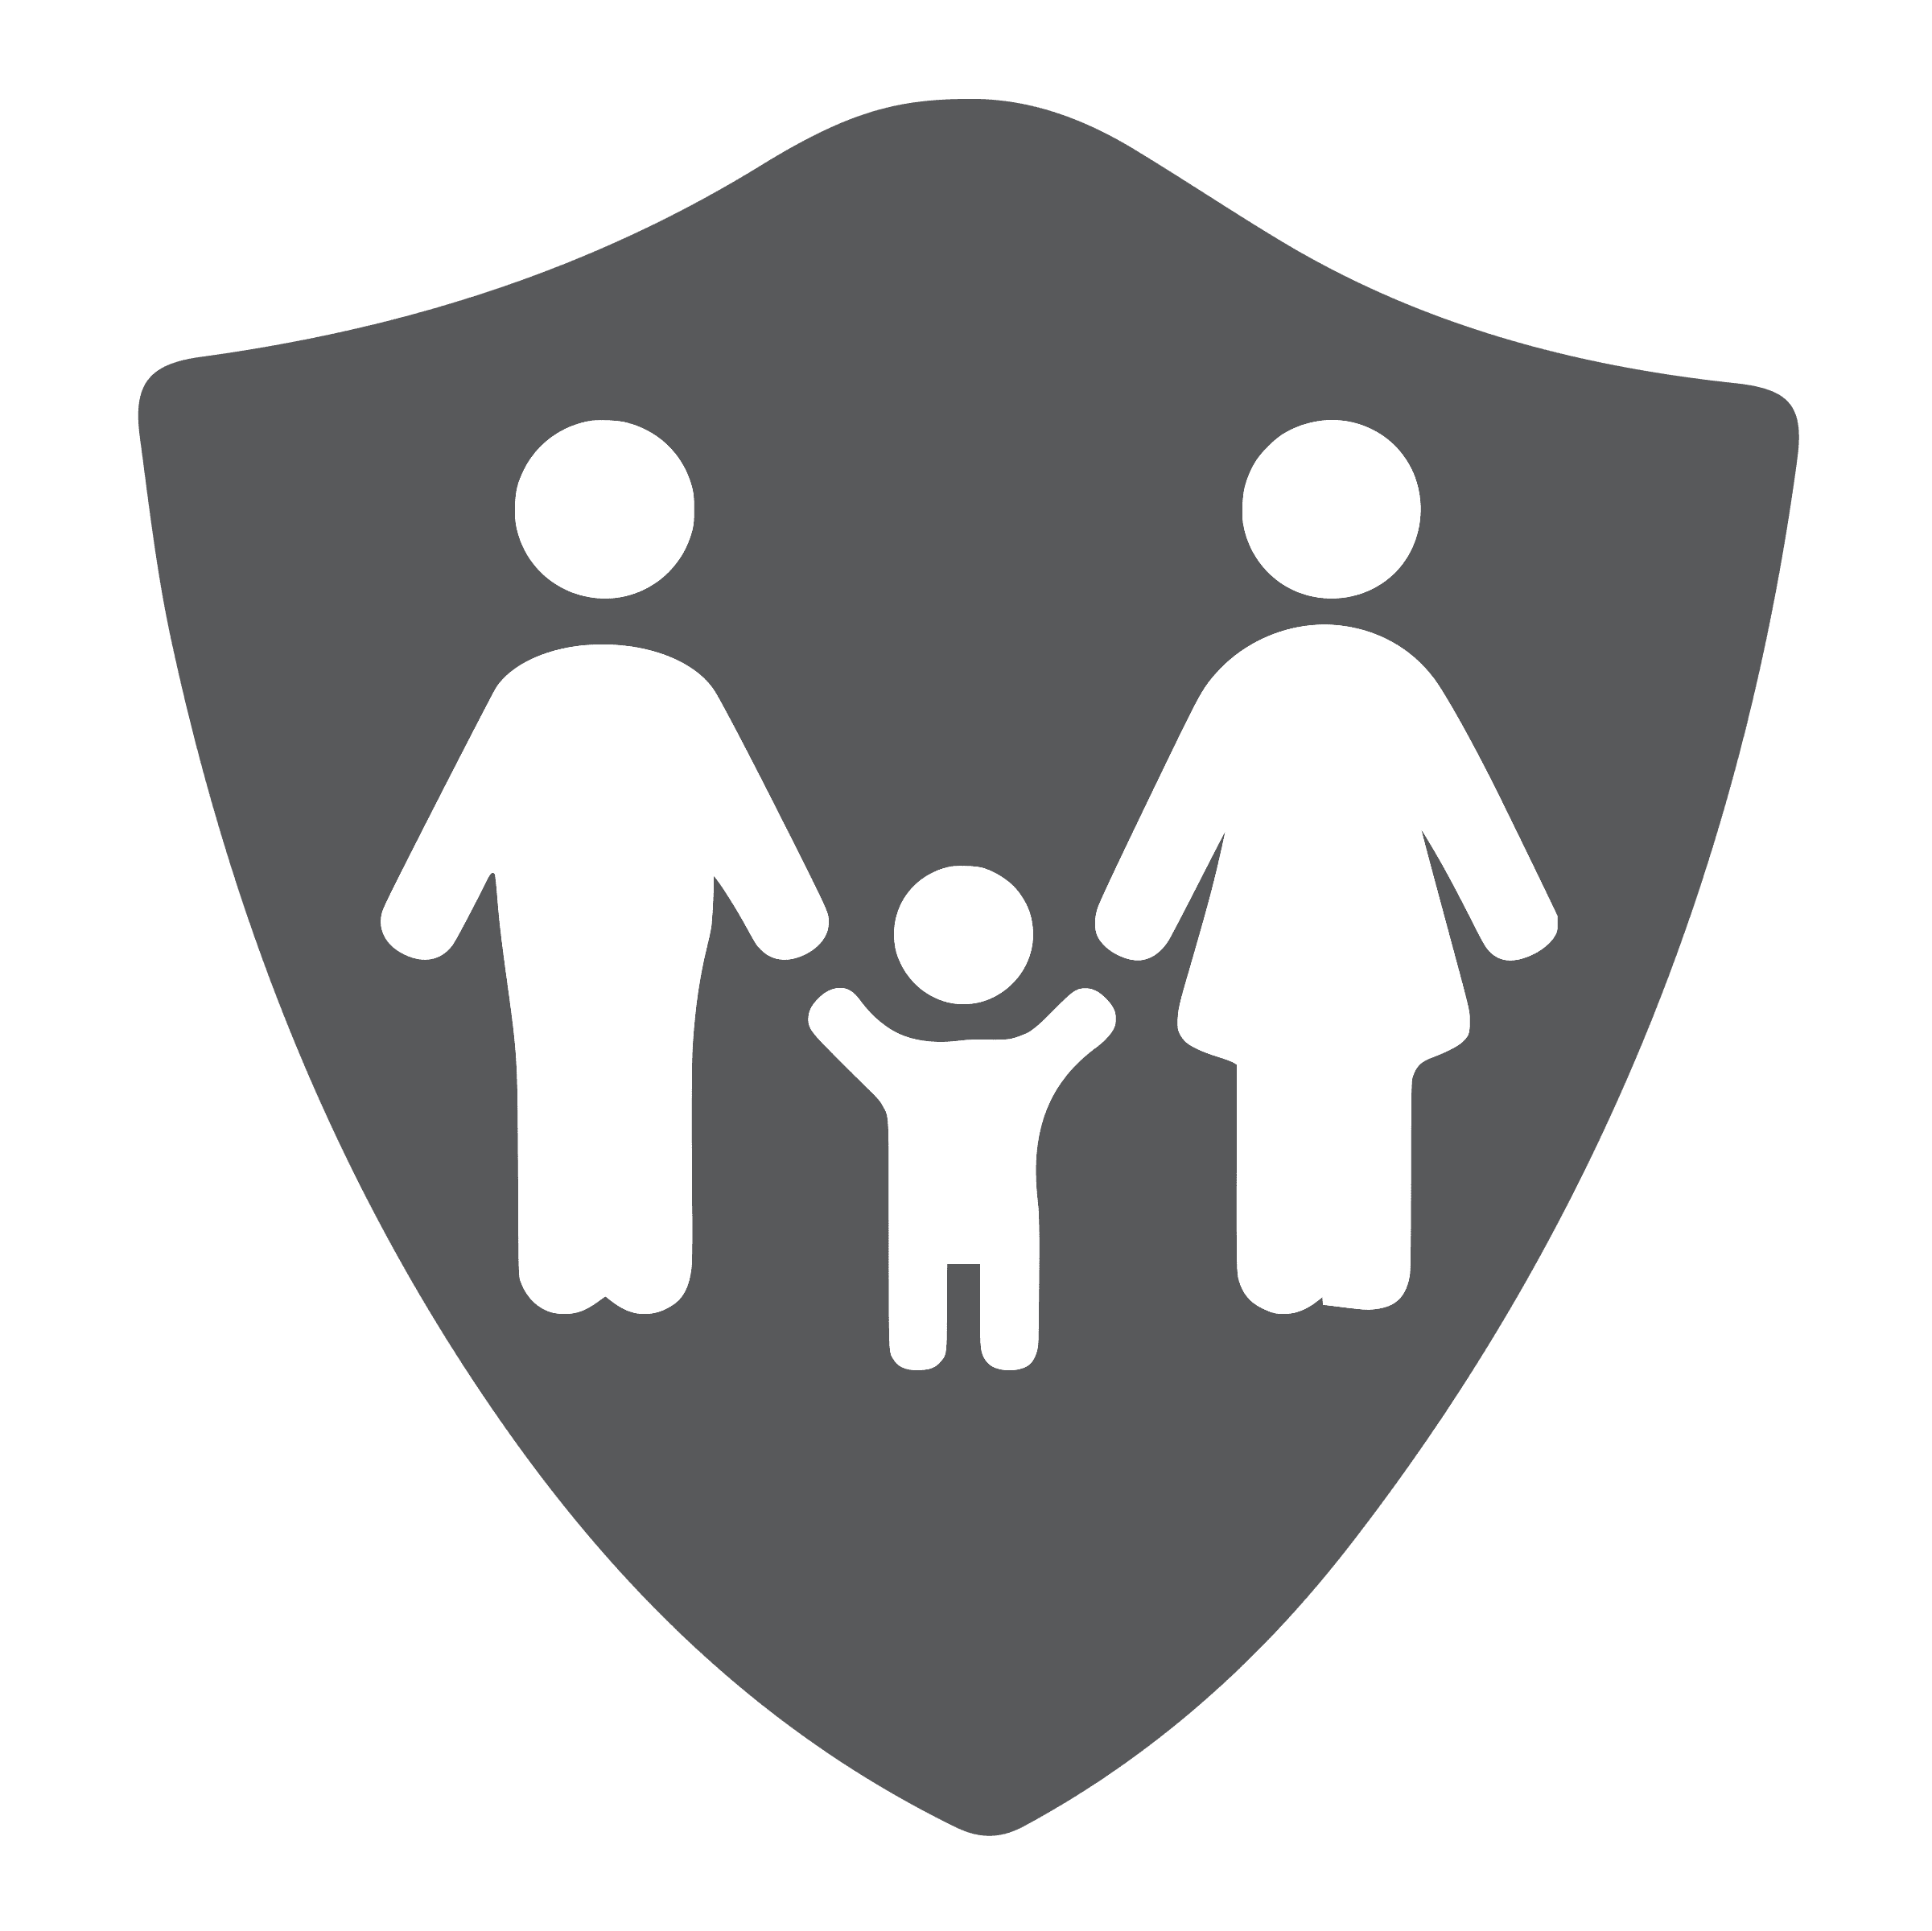 Safe and Secure icon